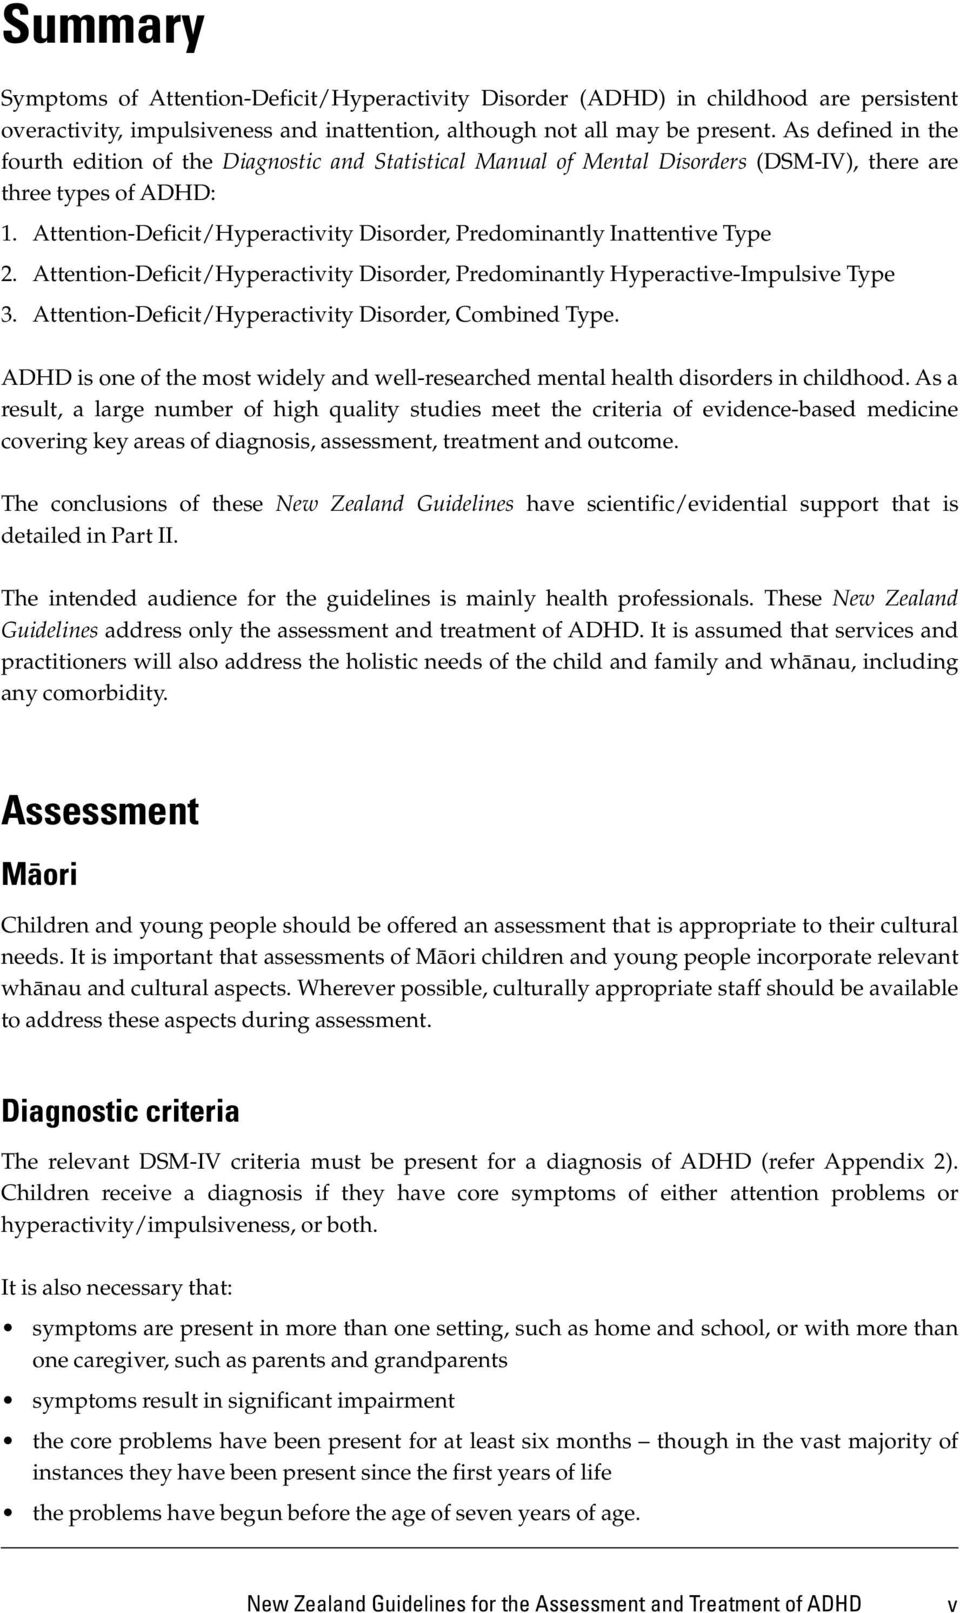 Not All Attention Problems Are Adhd >> New Zealand Guidelines For The Assessment And Treatment Of Attention